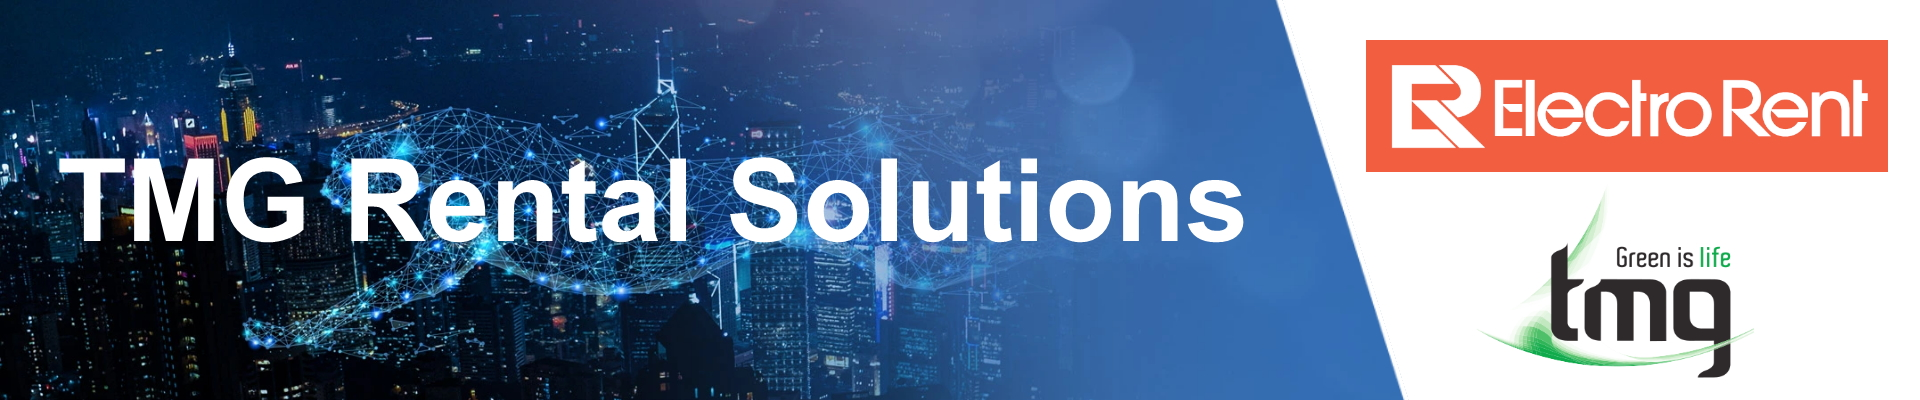 Rental Solutions from TMG & Electro Rent